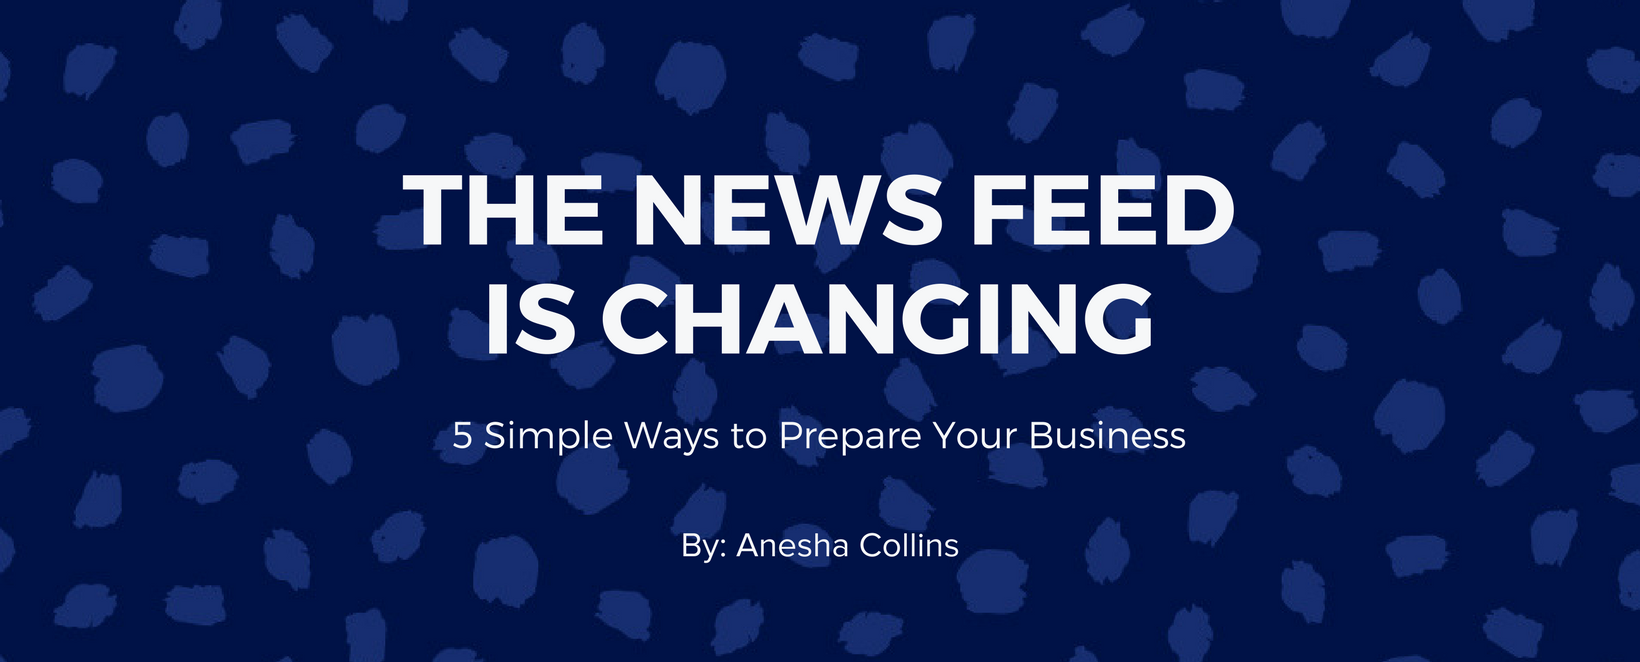 Facebook News Feed Changes - How to Prepare your Small Business Marketing Strategy